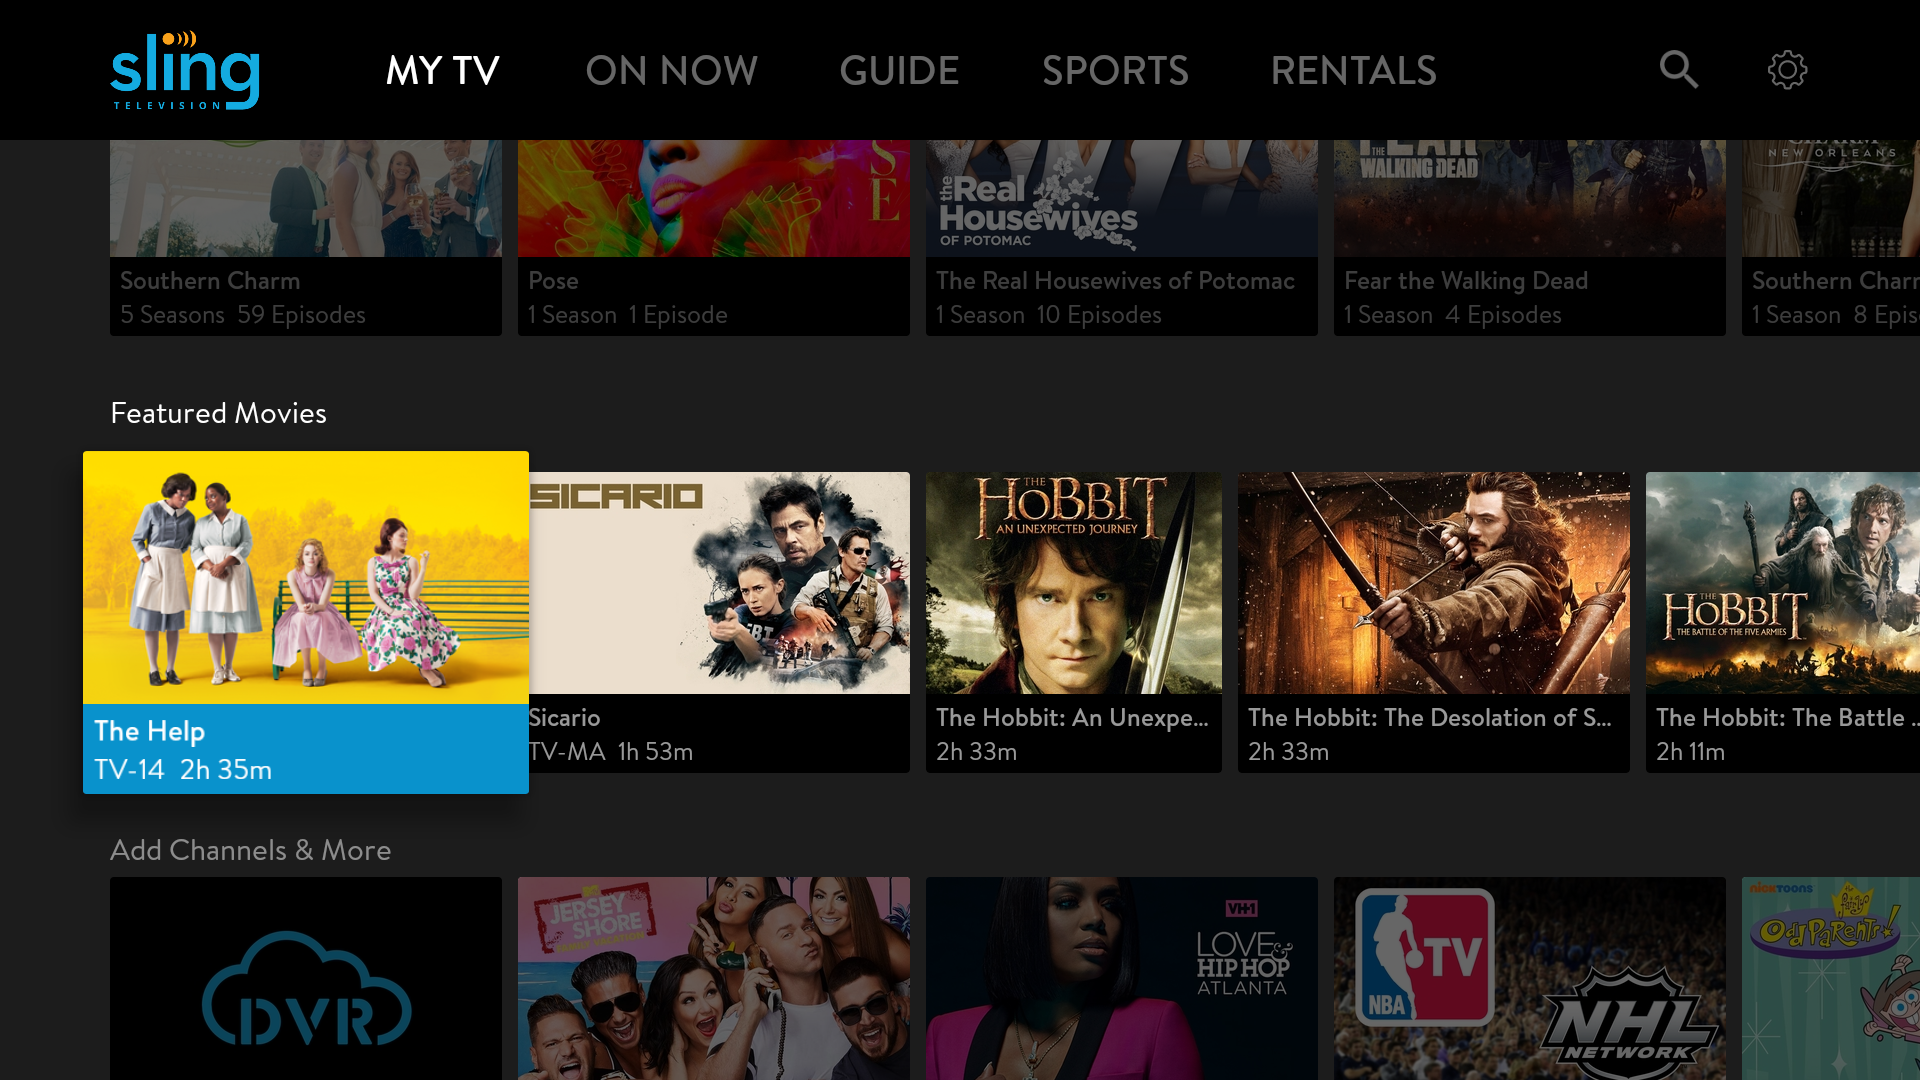 Sling TV lets you personalize the channels you subscribe to.